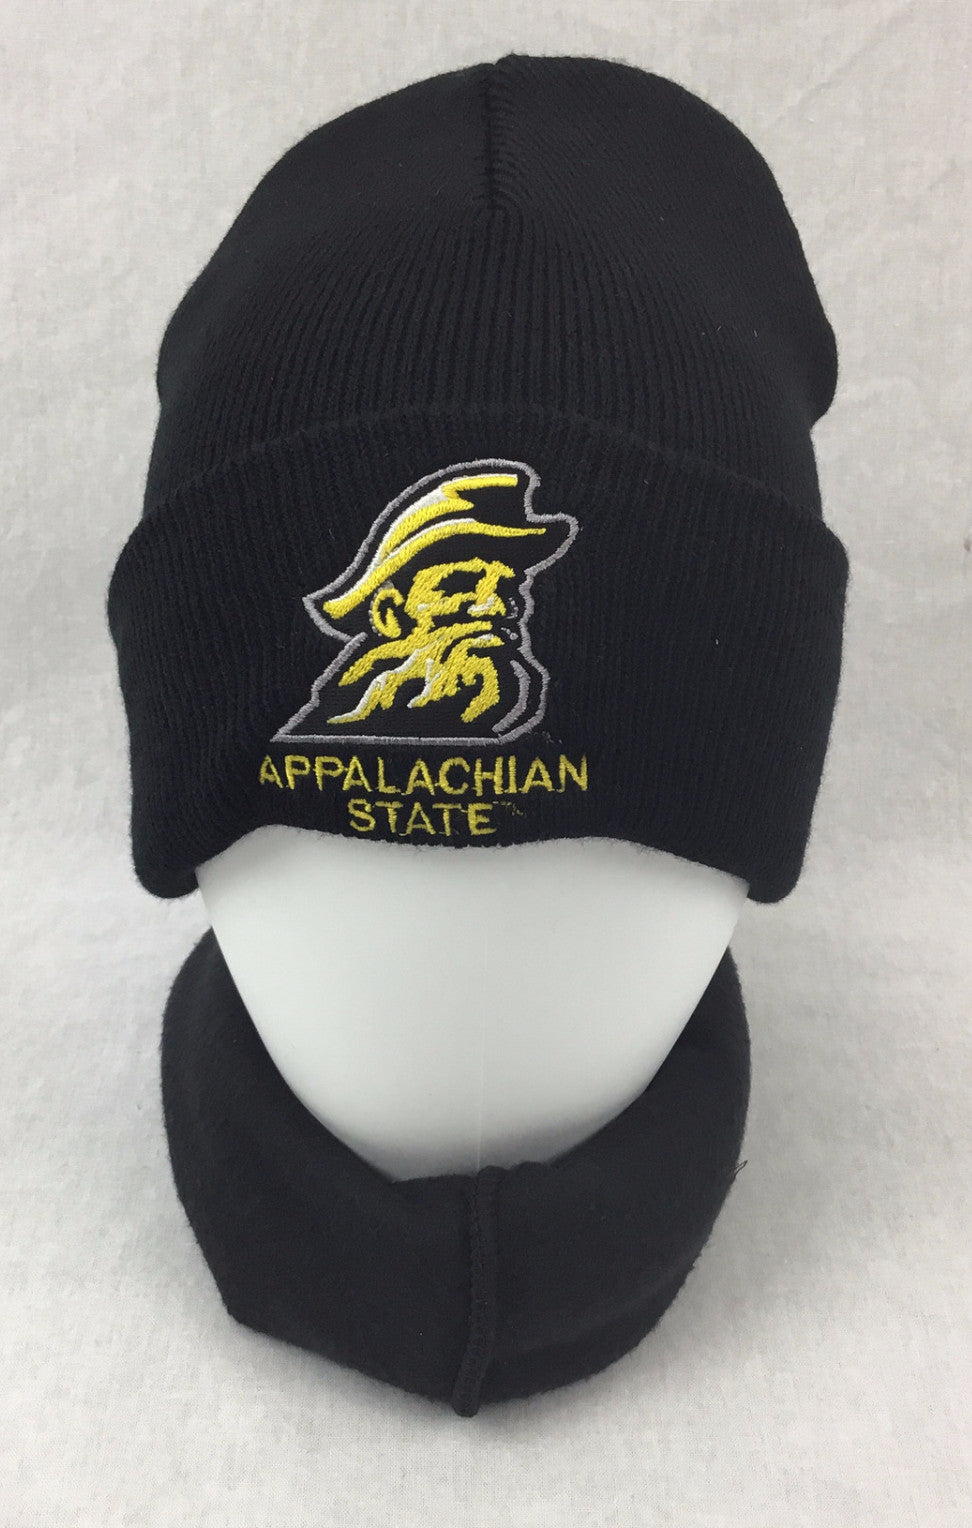 Appalachian State Stocking Cap with Old Yosef Logo